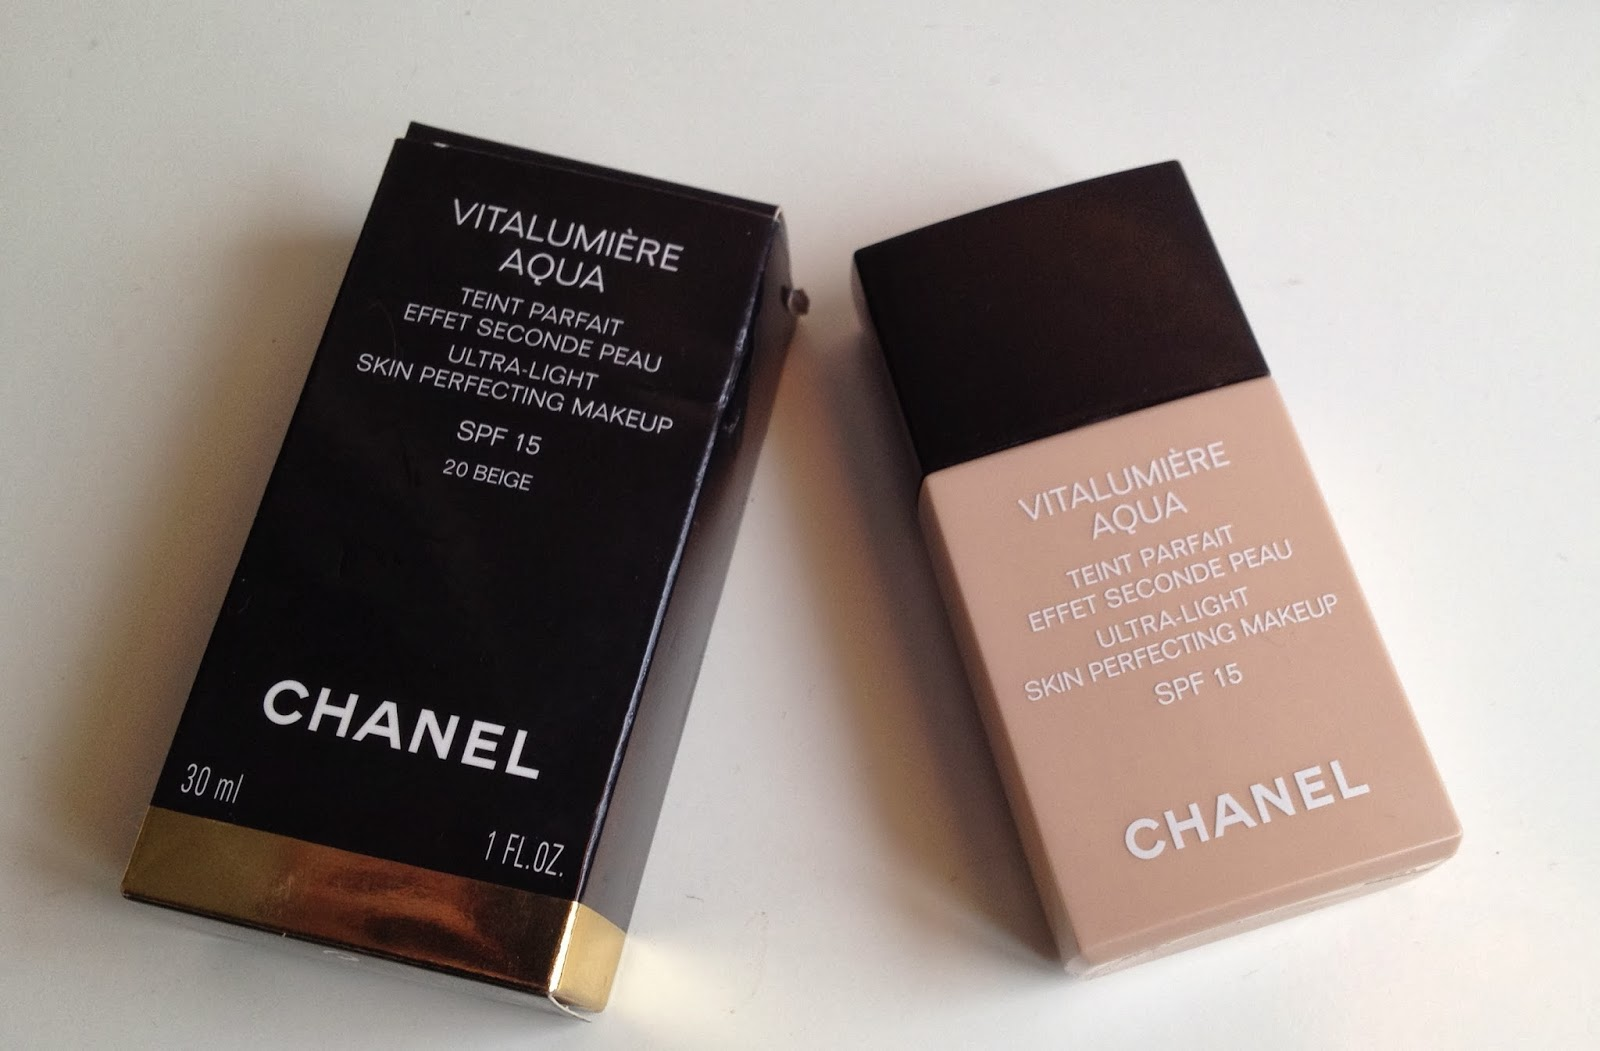 Chanel Vitalumiere Aqua Foundation B20